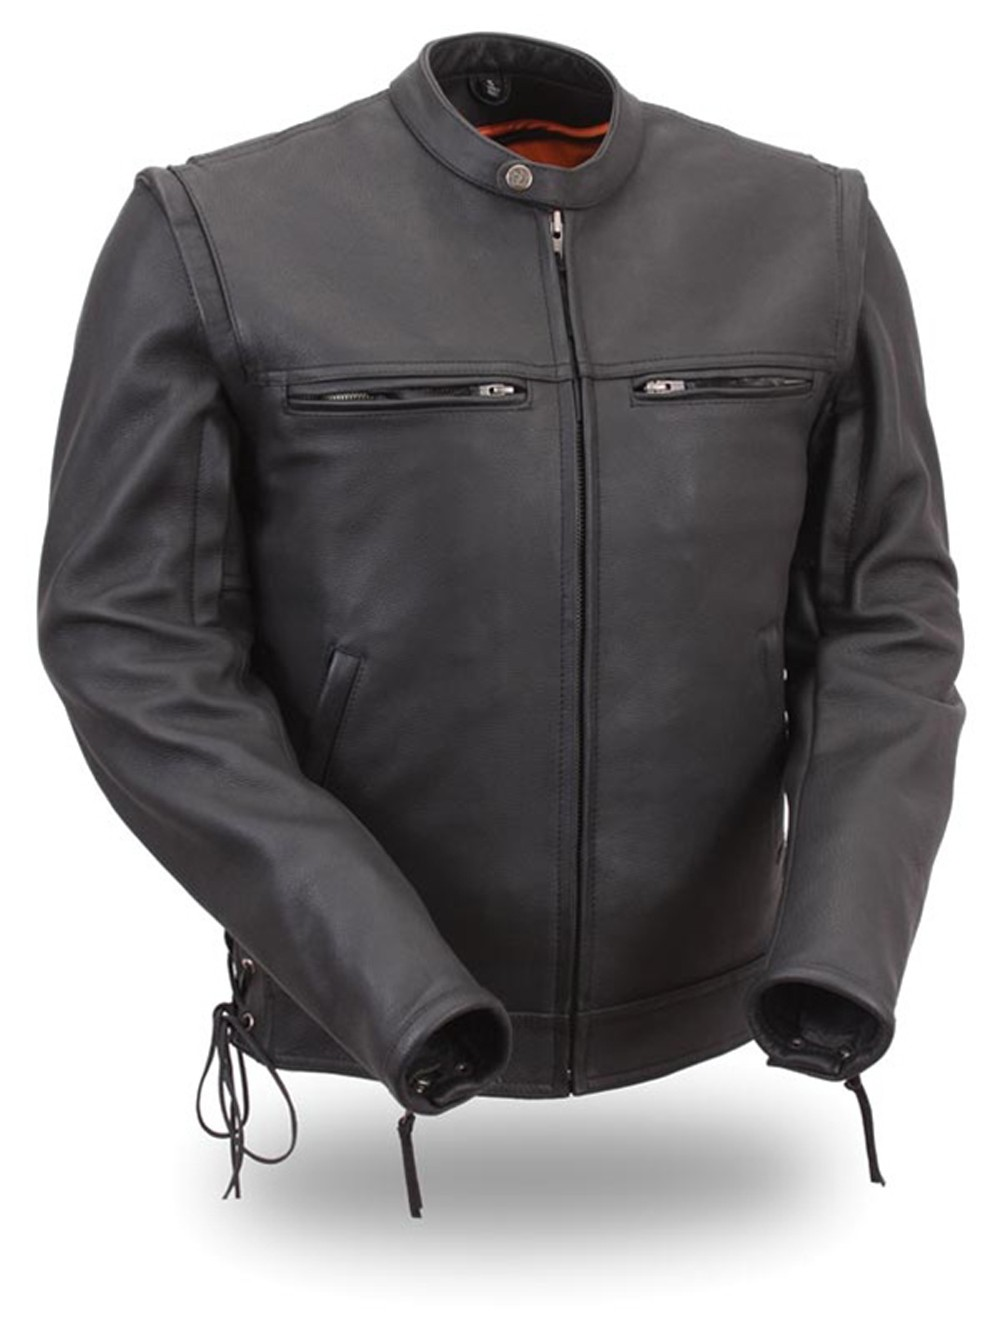 Men's Sleek Vented Scooter Zip Off Sleeve Jacket FIM225CSLZ